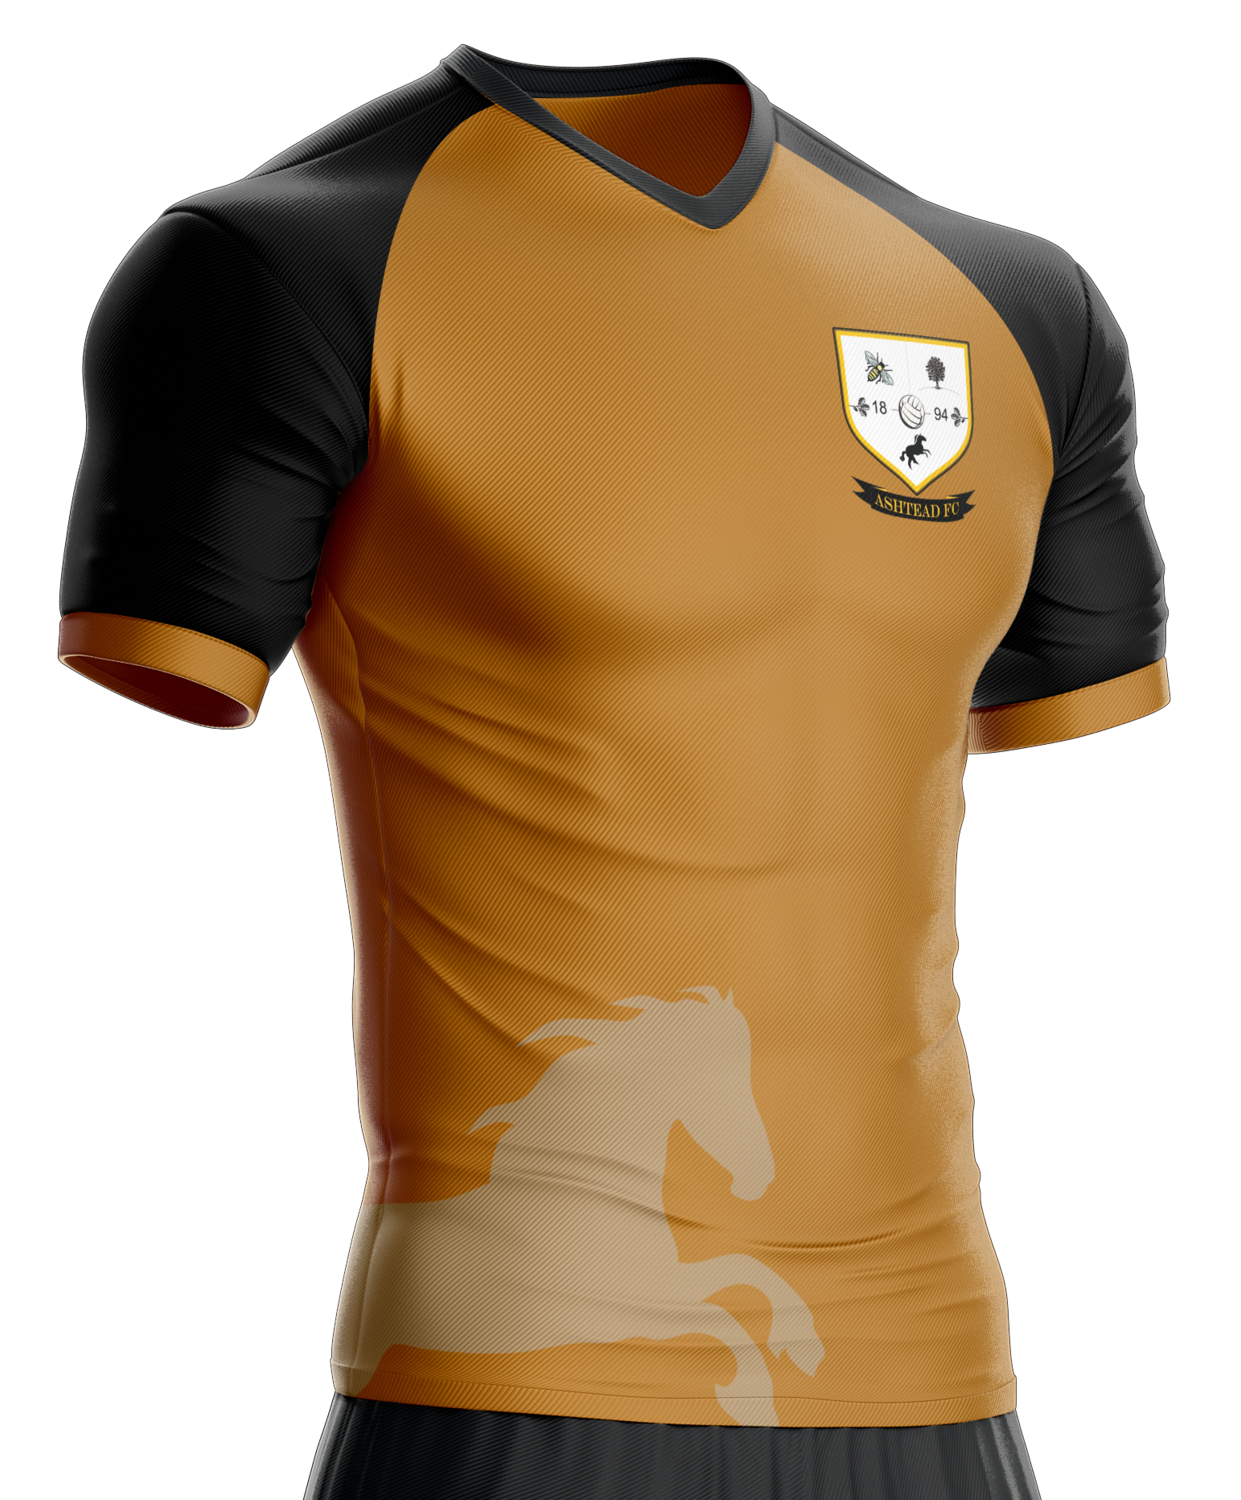 Ashtead FC outfield playing Shirt